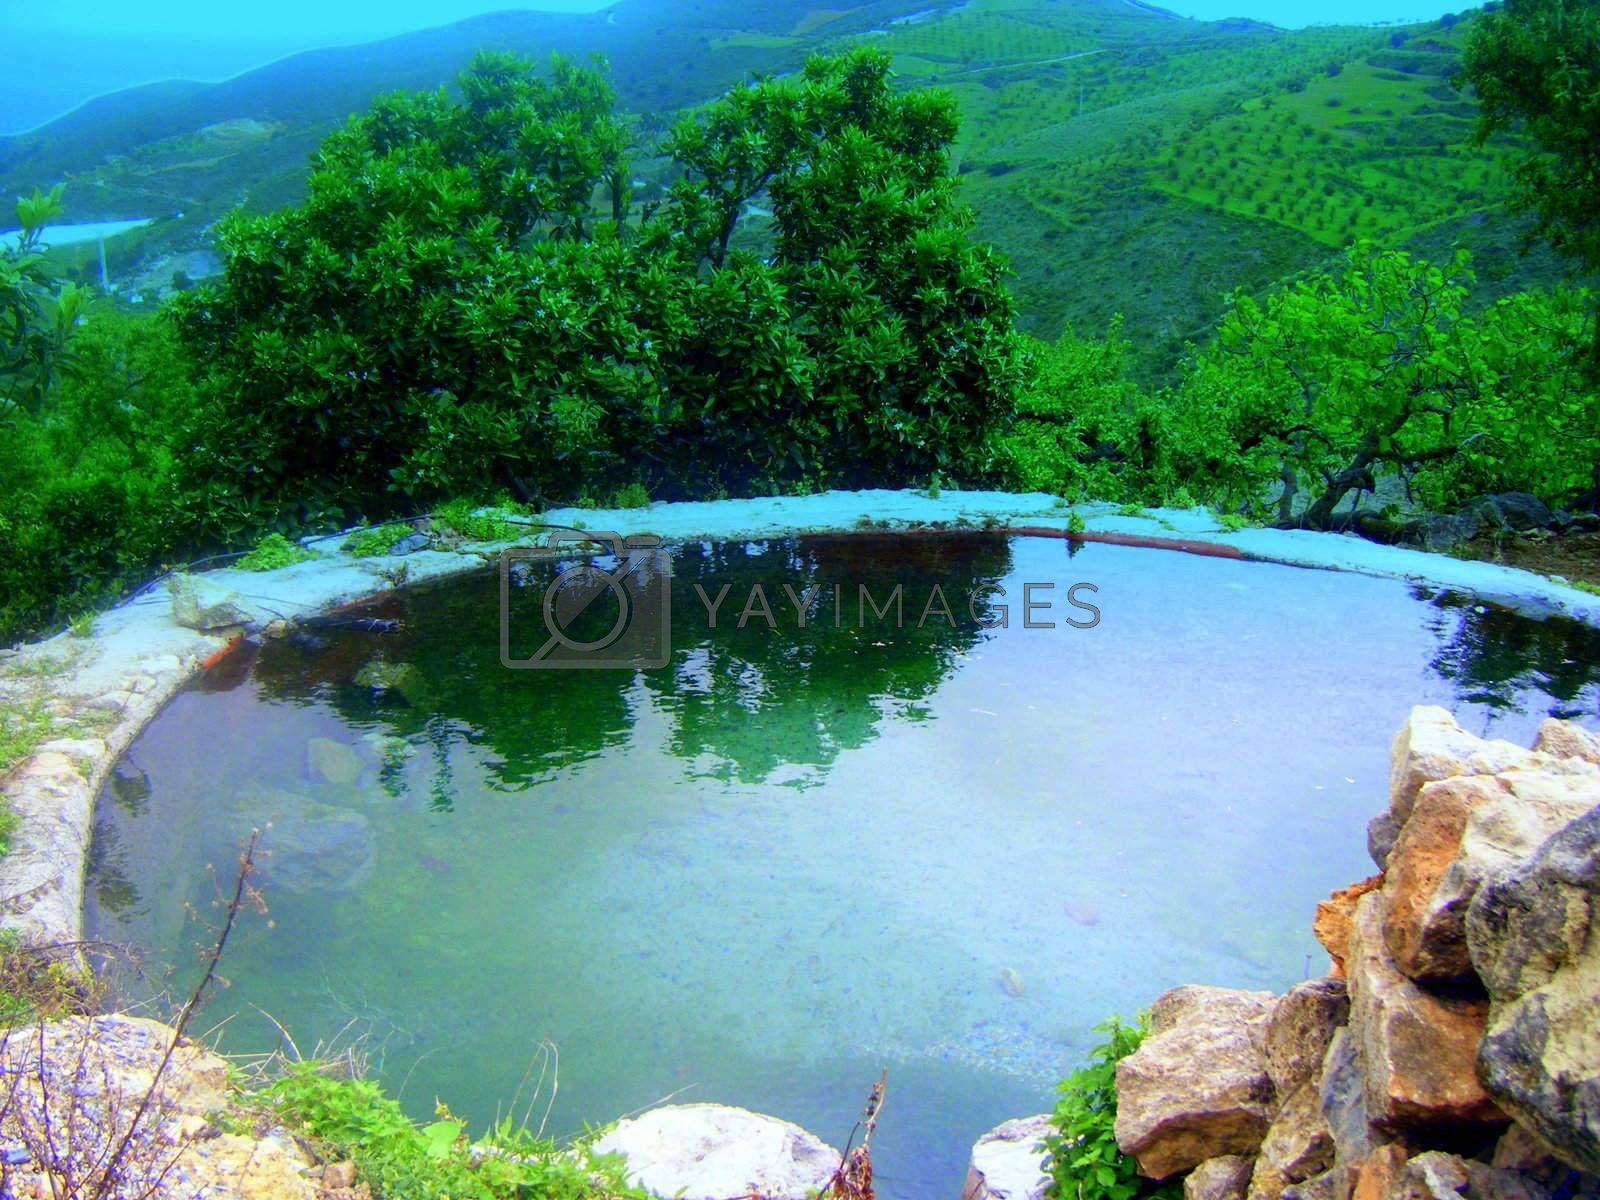 A round pool reflecting orrange trees and the valley behind.agricultur.. andalucia arch background bright contrast countryside decorative design ecology environment fishermen fishing fresh idyll land landscape lifestyle outdoor perspective picturesque postcard recreation relax rural season seasonal sightseeing space spain spanish sunset texture tourism tradicional travel travell vacation vibrant vilage vivid walkway weather